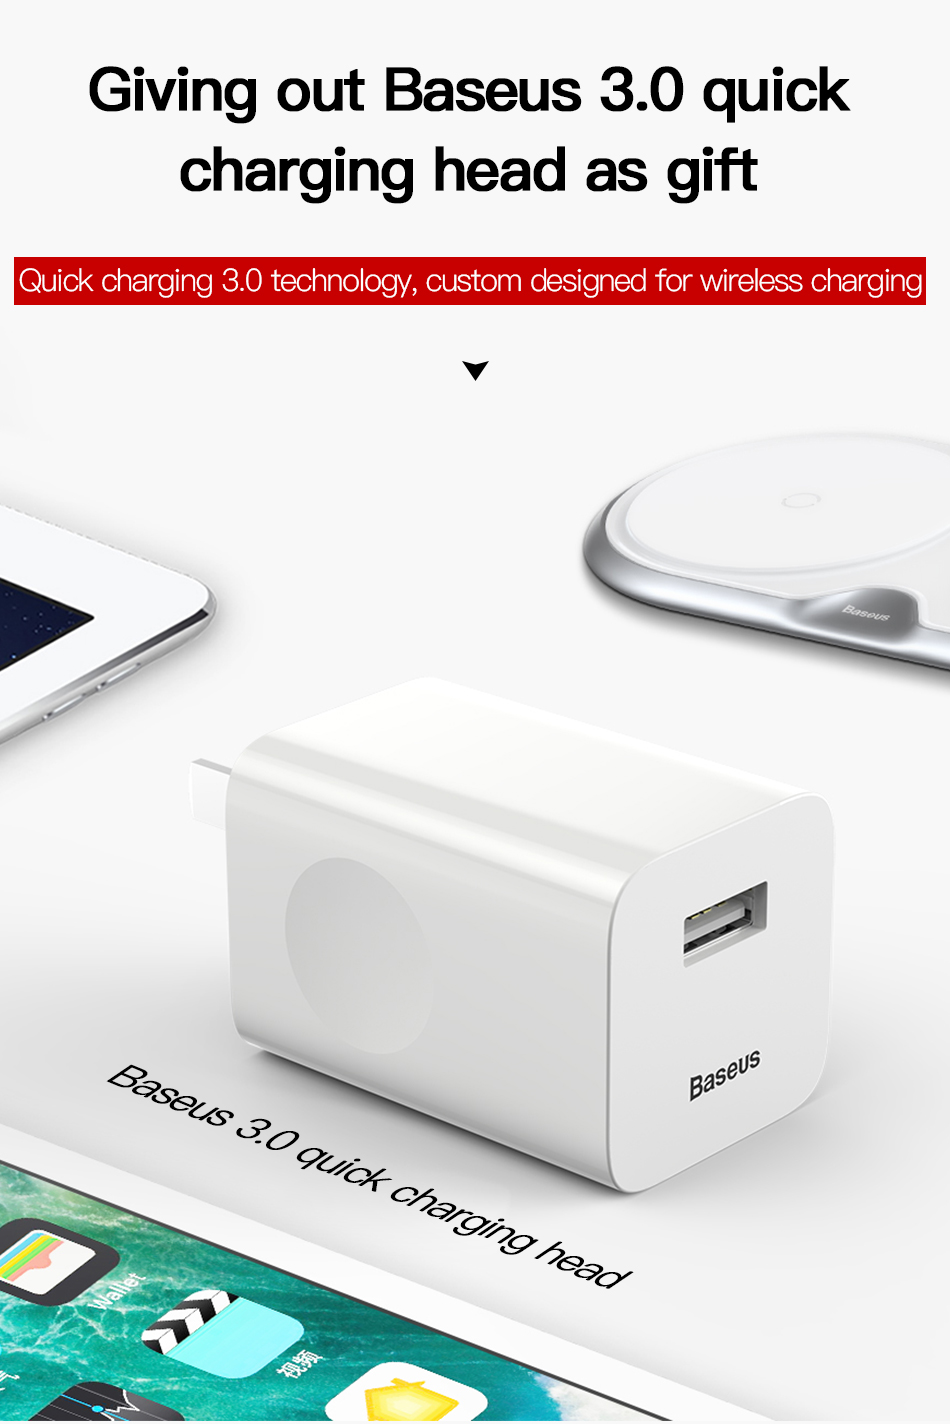 Wireless Charger of Baseus Dual For iPhone X XS Max Xr Samsung S9 S8 Note 8 9 10W Fast Wireless Charging Pad Dock Station Desktop 14